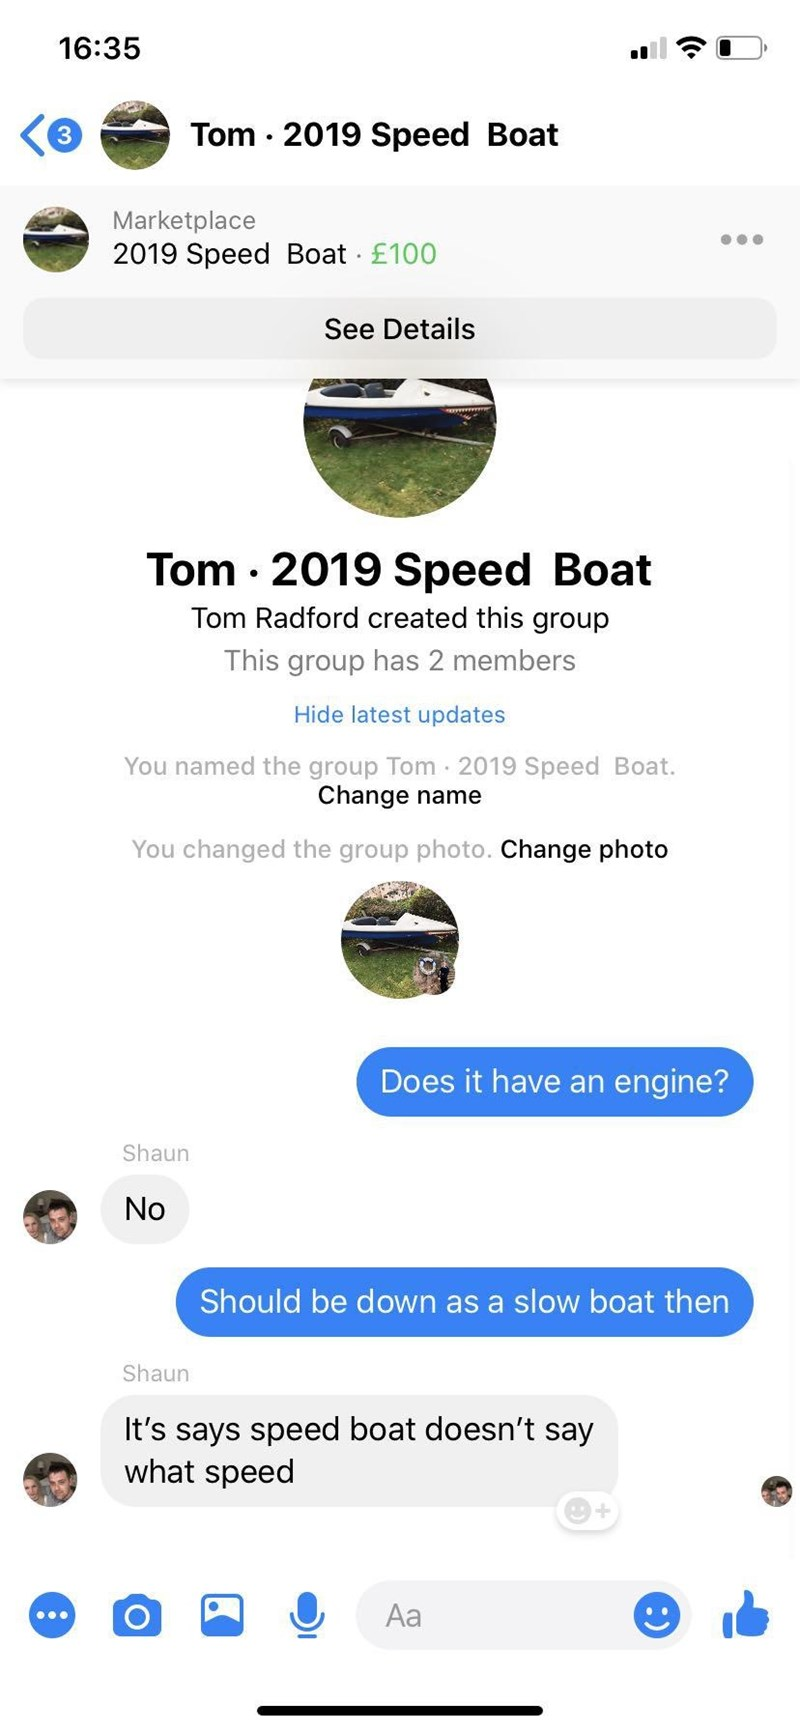 Font - 16:35 Tom · 2019 Speed Boat Marketplace 2019 Speed Boat £100 See Details Tom · 2019 Speed Boat Tom Radford created this group This group has 2 members Hide latest updates You named the group Tom · 2019 Speed Boat. Change name You changed the group photo. Change photo Does it have an engine? Shaun No Should be down as a slow boat then Shaun It's says speed boat doesn't say what speed Aa